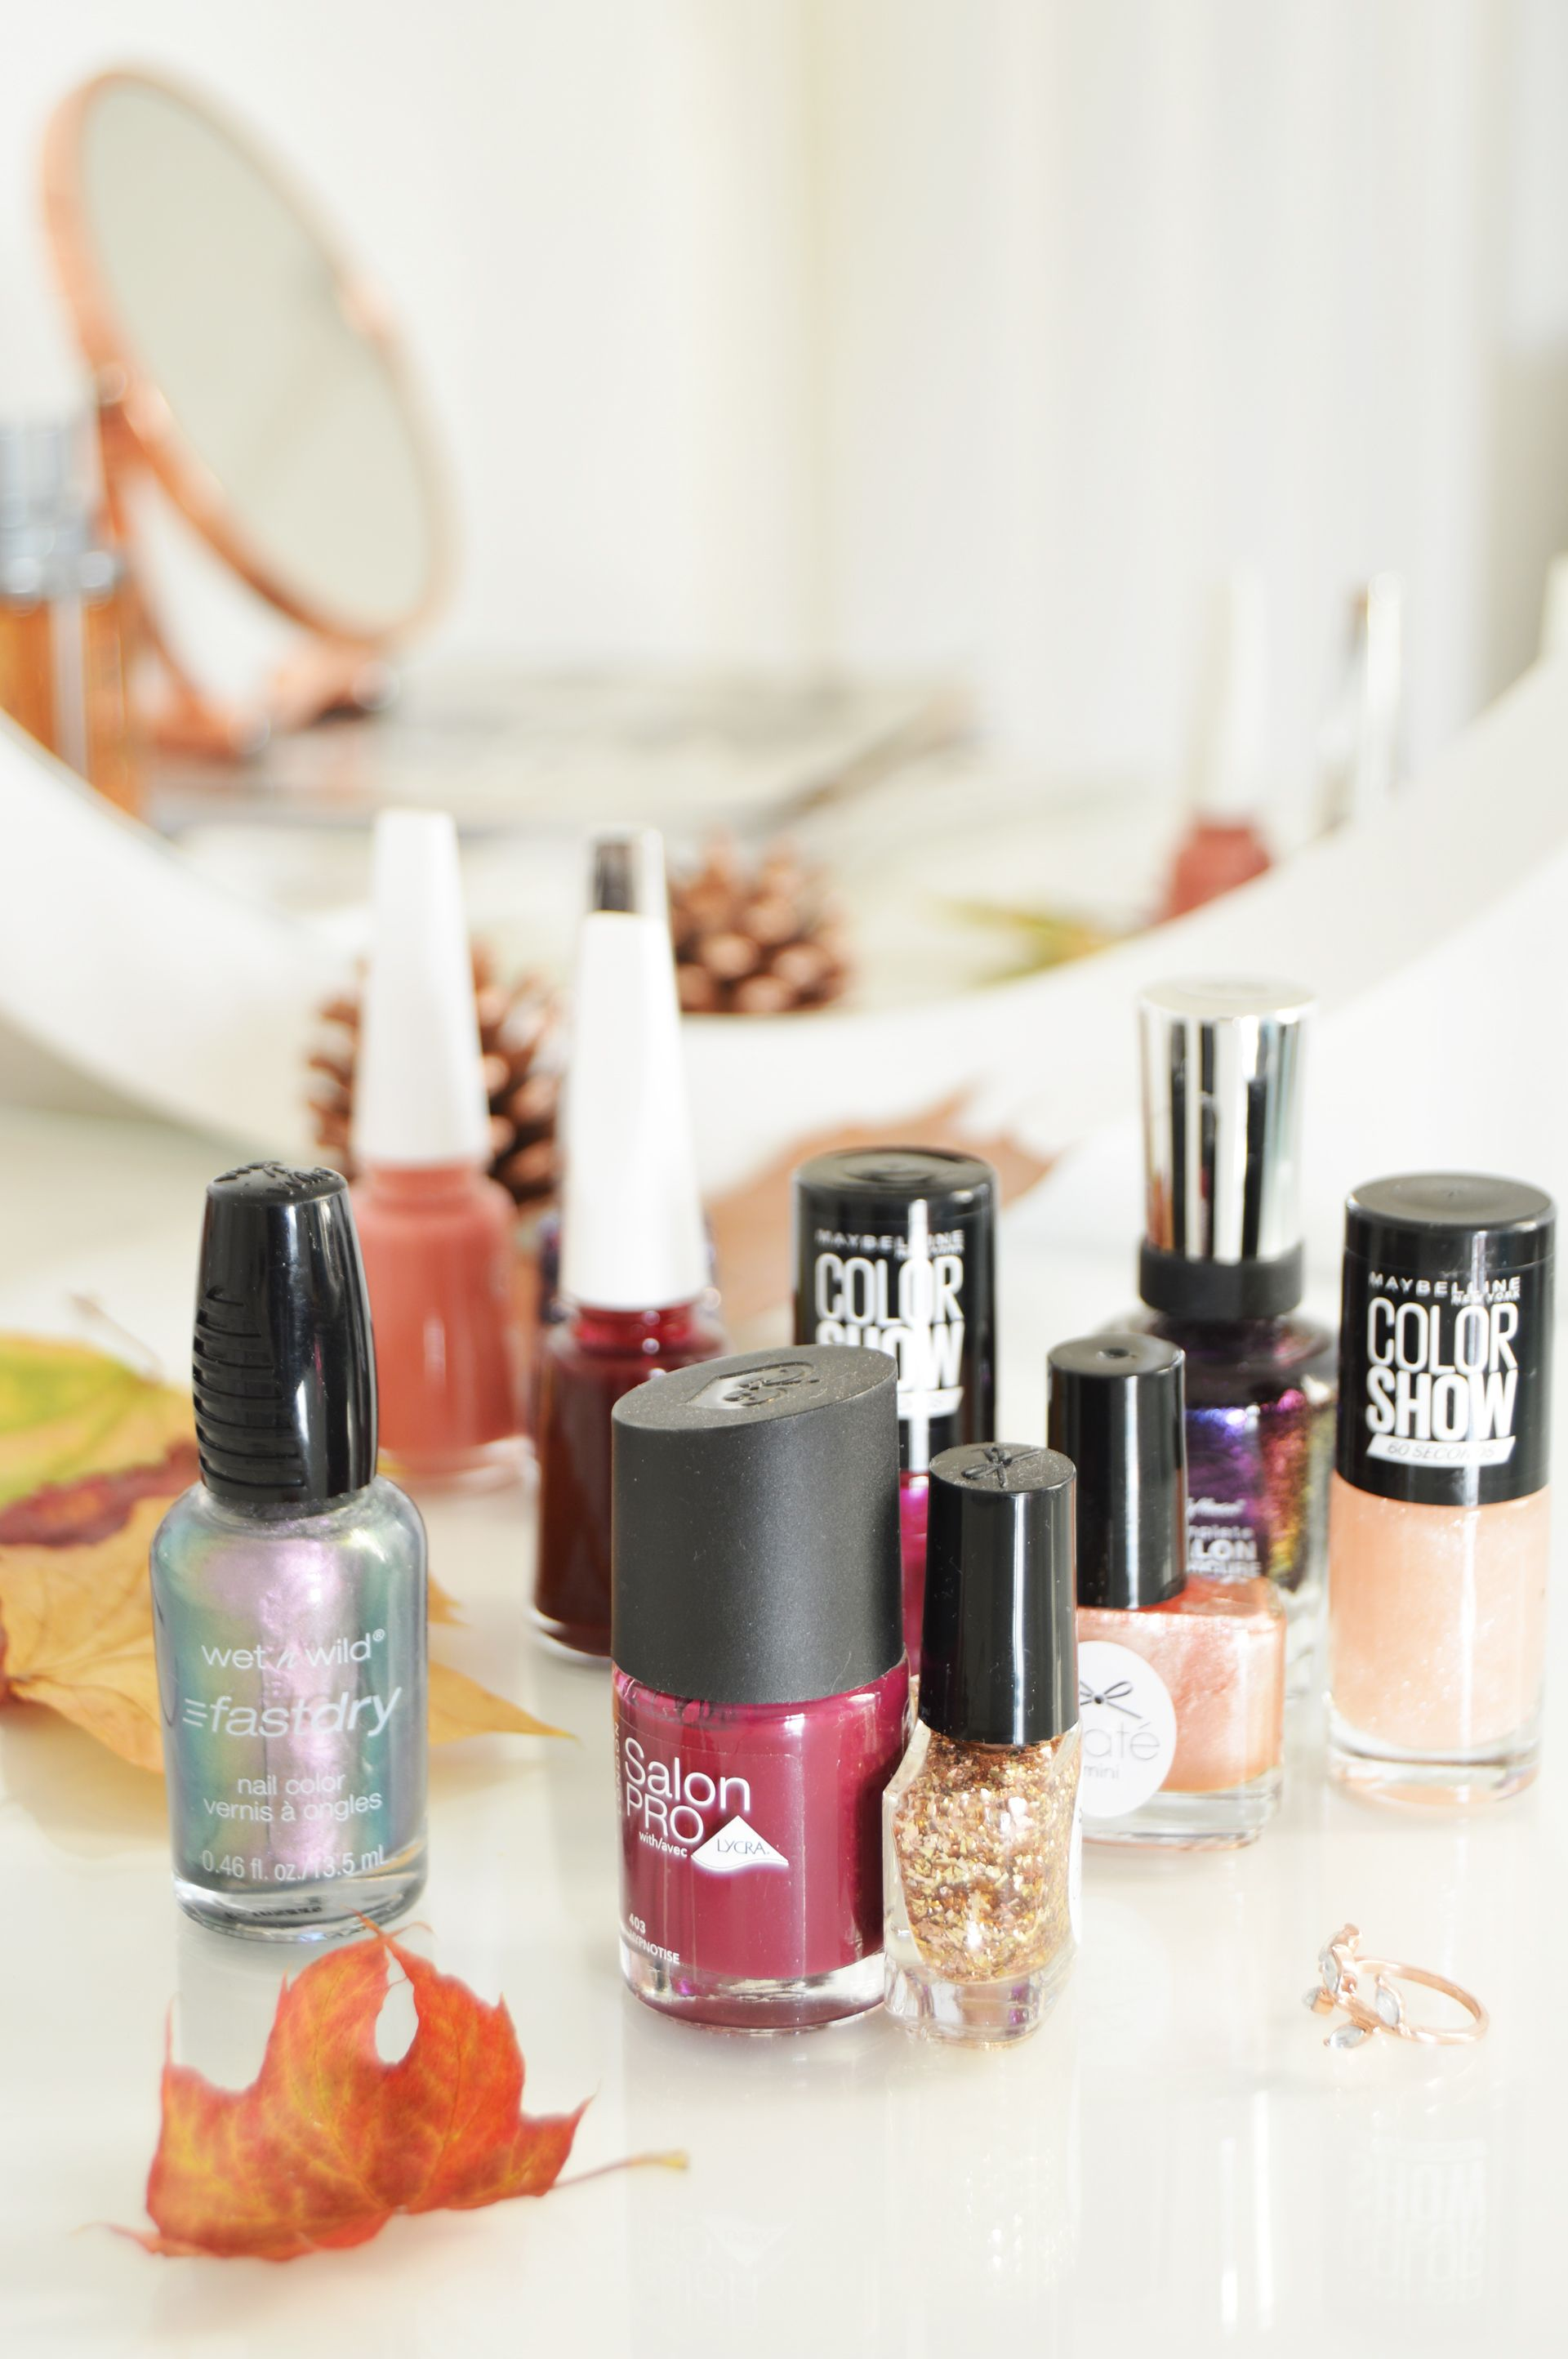 Nail polish duos for Autumn - One of the ways to brighten up a gloomy day is to wear colourful beauty products. Sometimes mono colour might be boring so why not use nail polish duos to make things even more colourful?